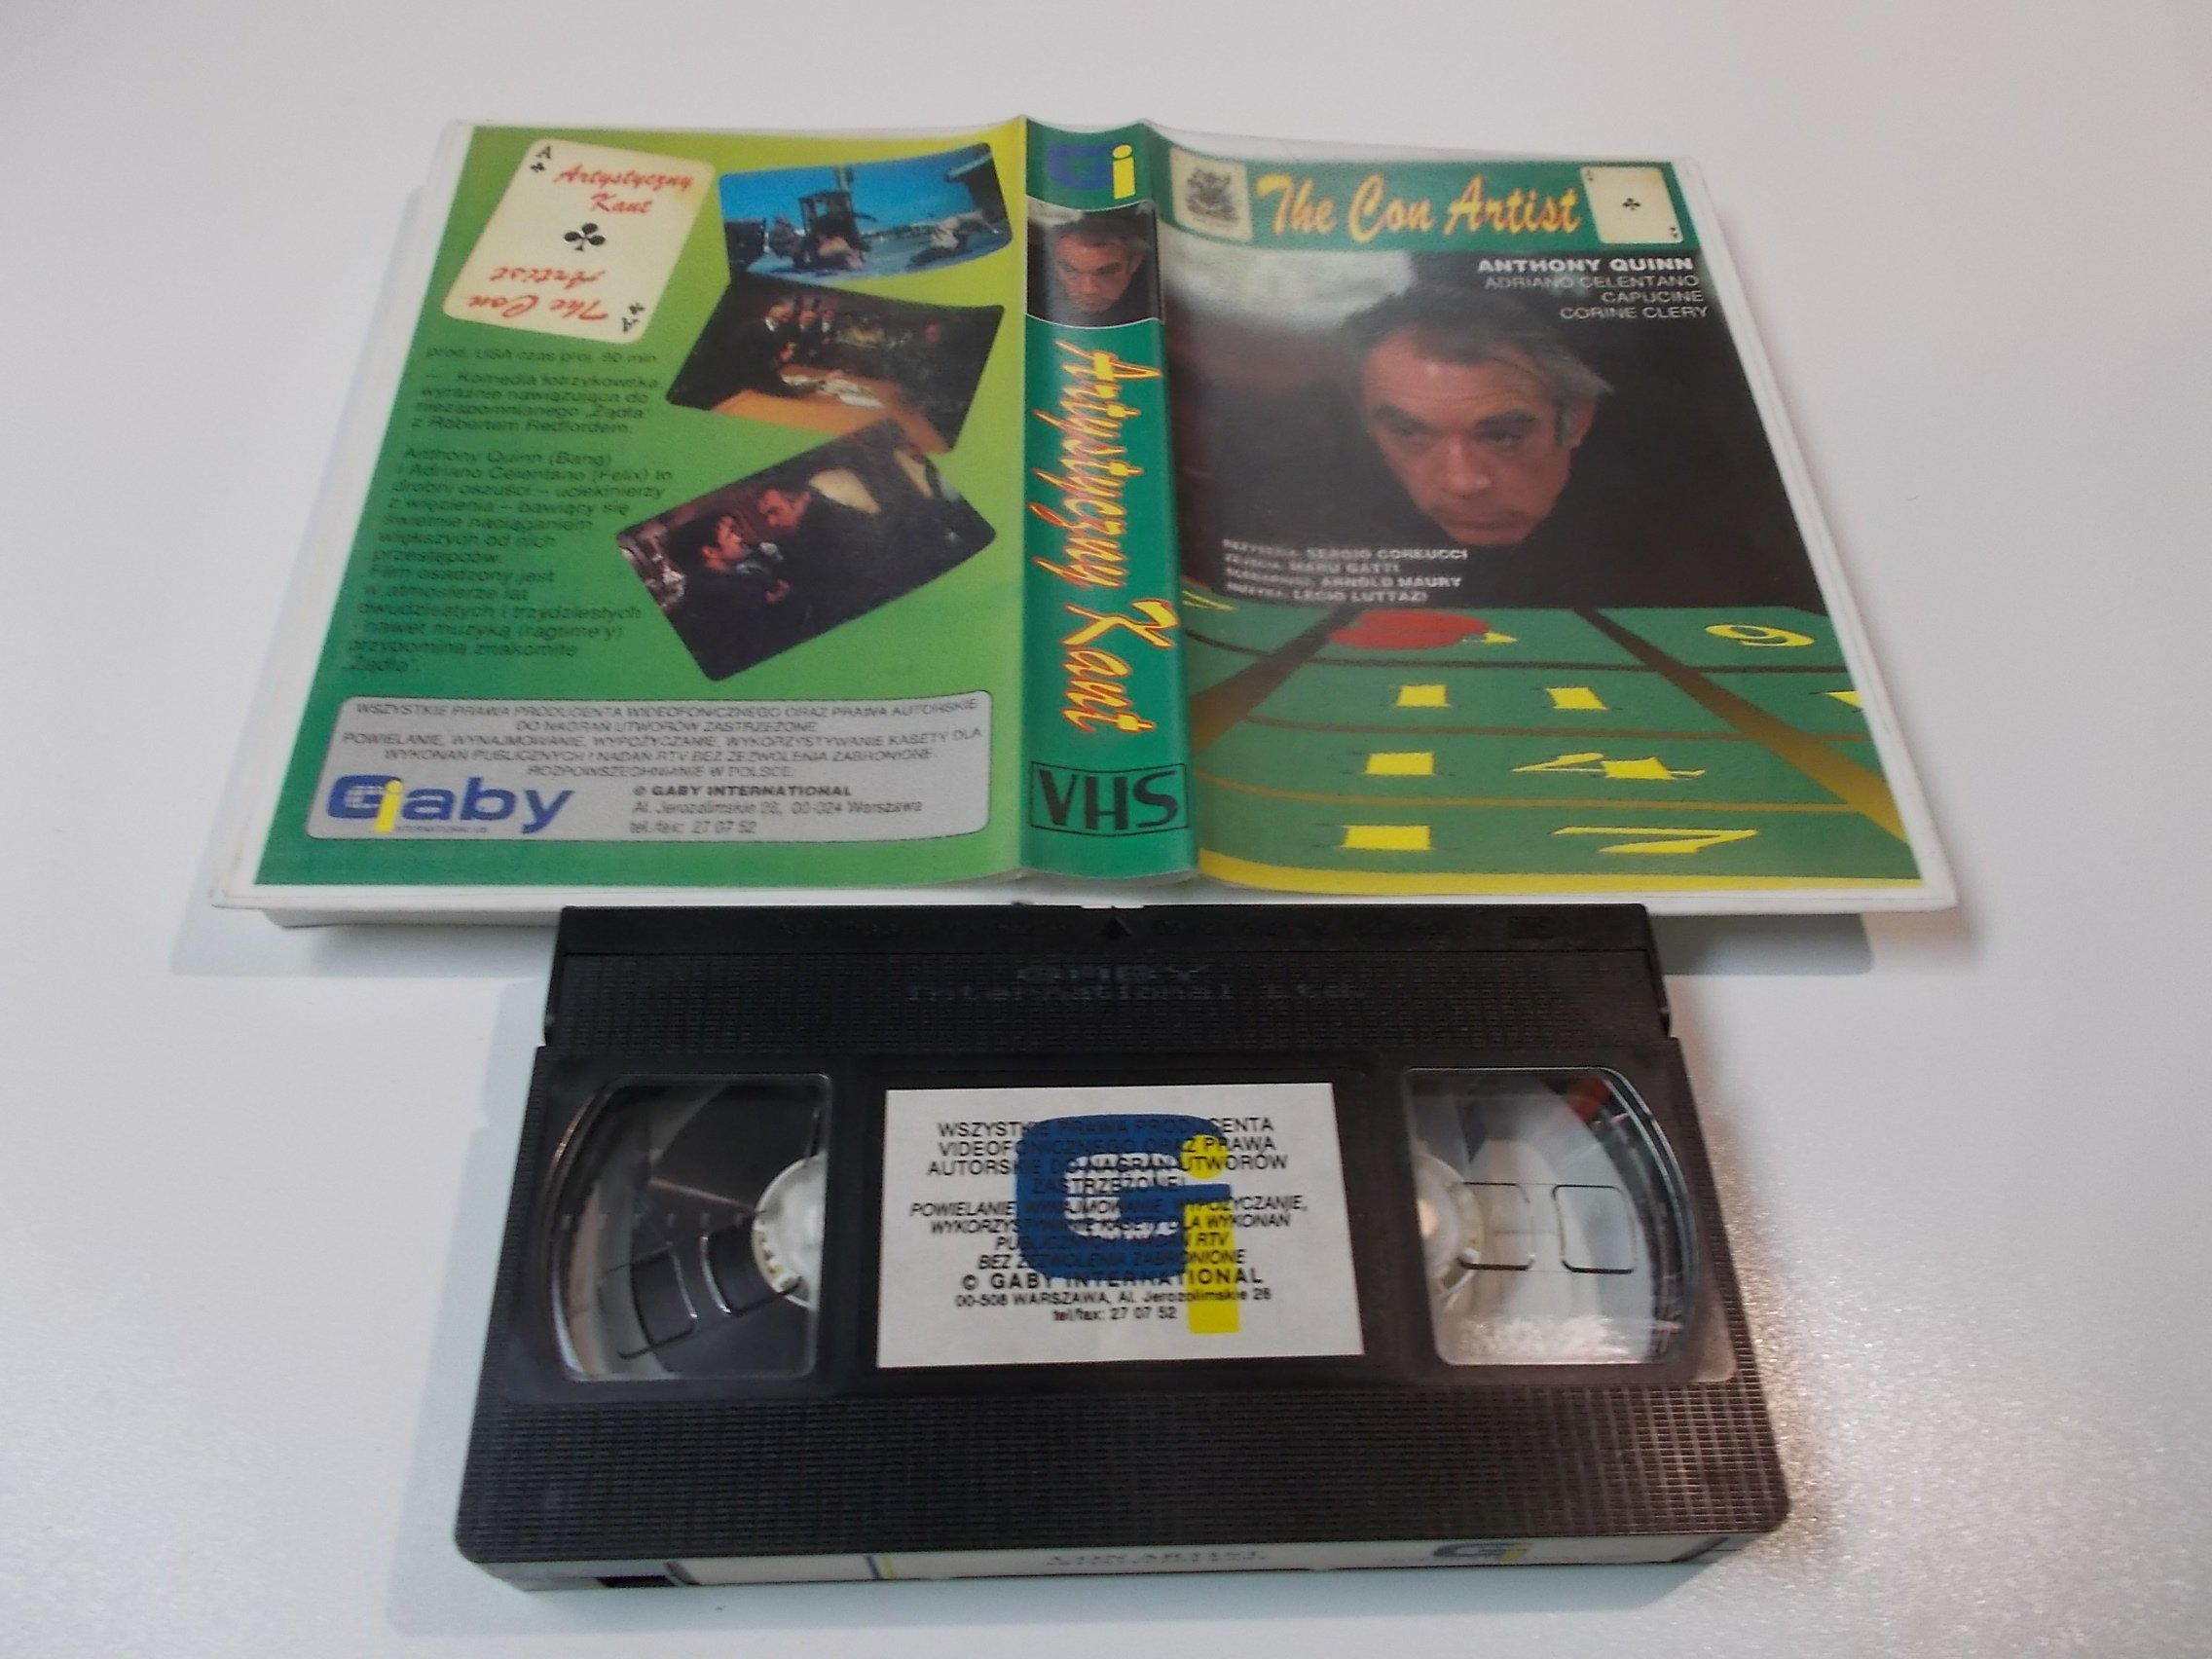 ARTZSTZCYNZ KANT - ANTHONZ QUINN - kaseta Video VHS - 1433 Sklep